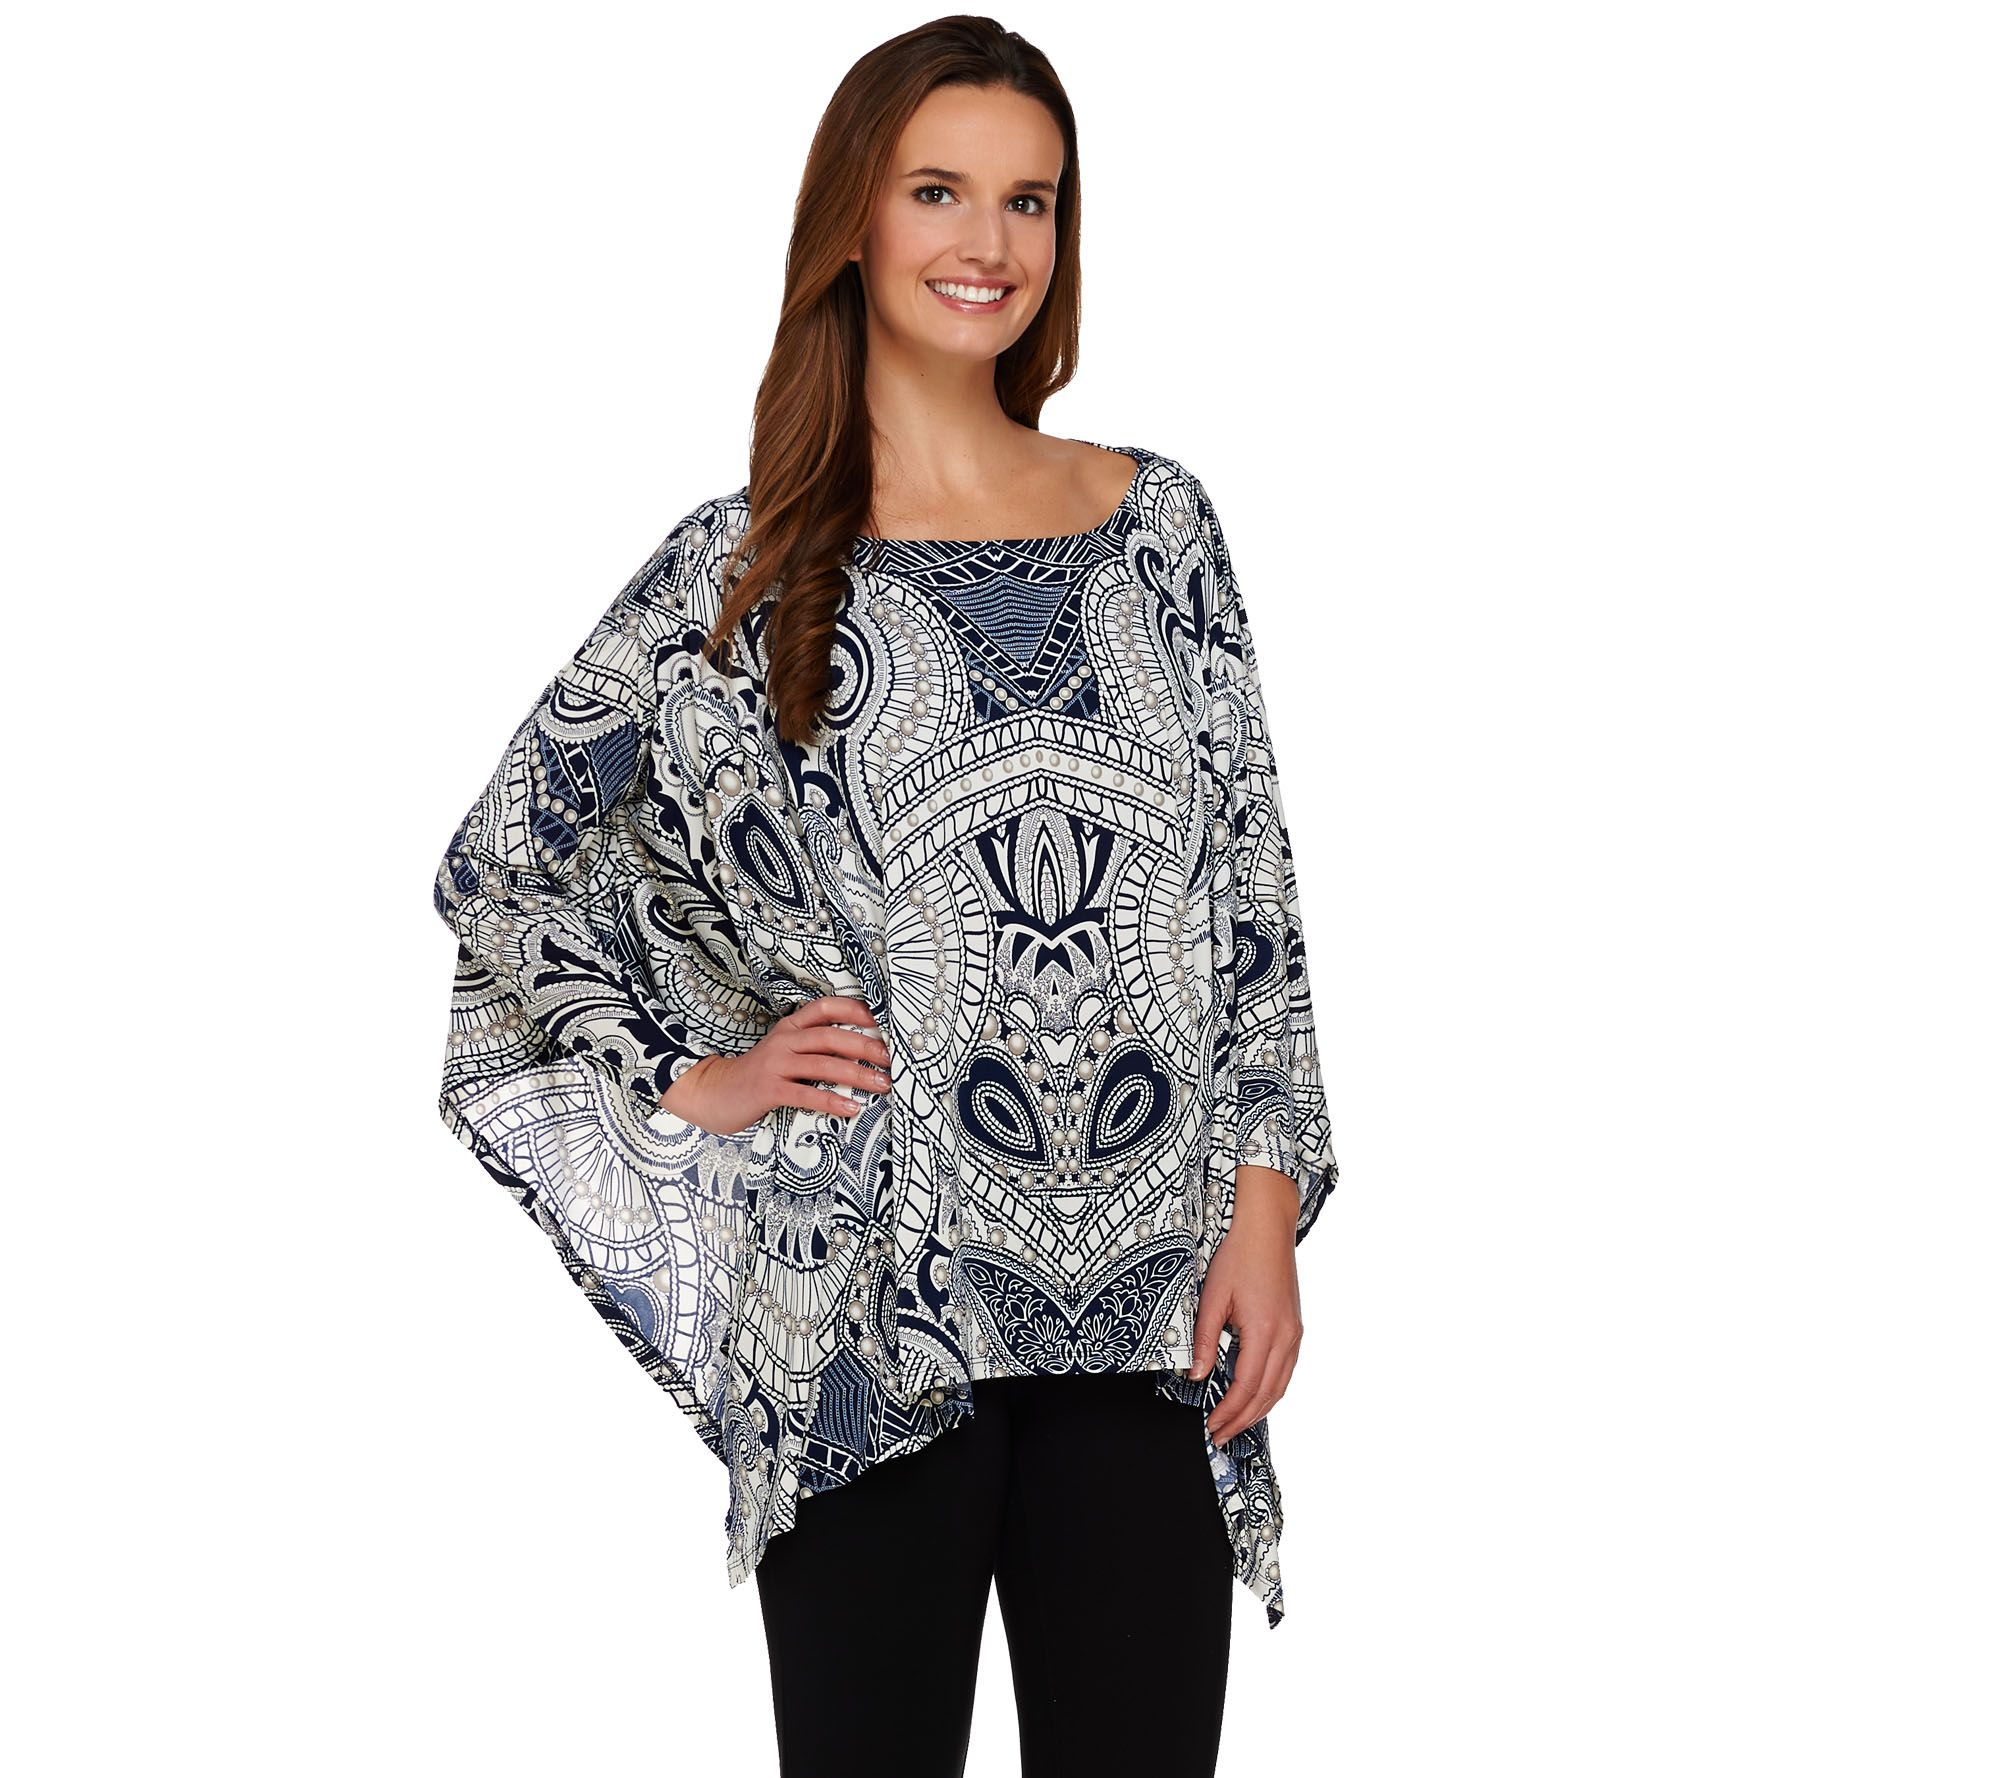 Shop our Collection of Women's Poncho Sweaters at 24software.ml for the Latest Designer Brands & Styles. FREE SHIPPING AVAILABLE!